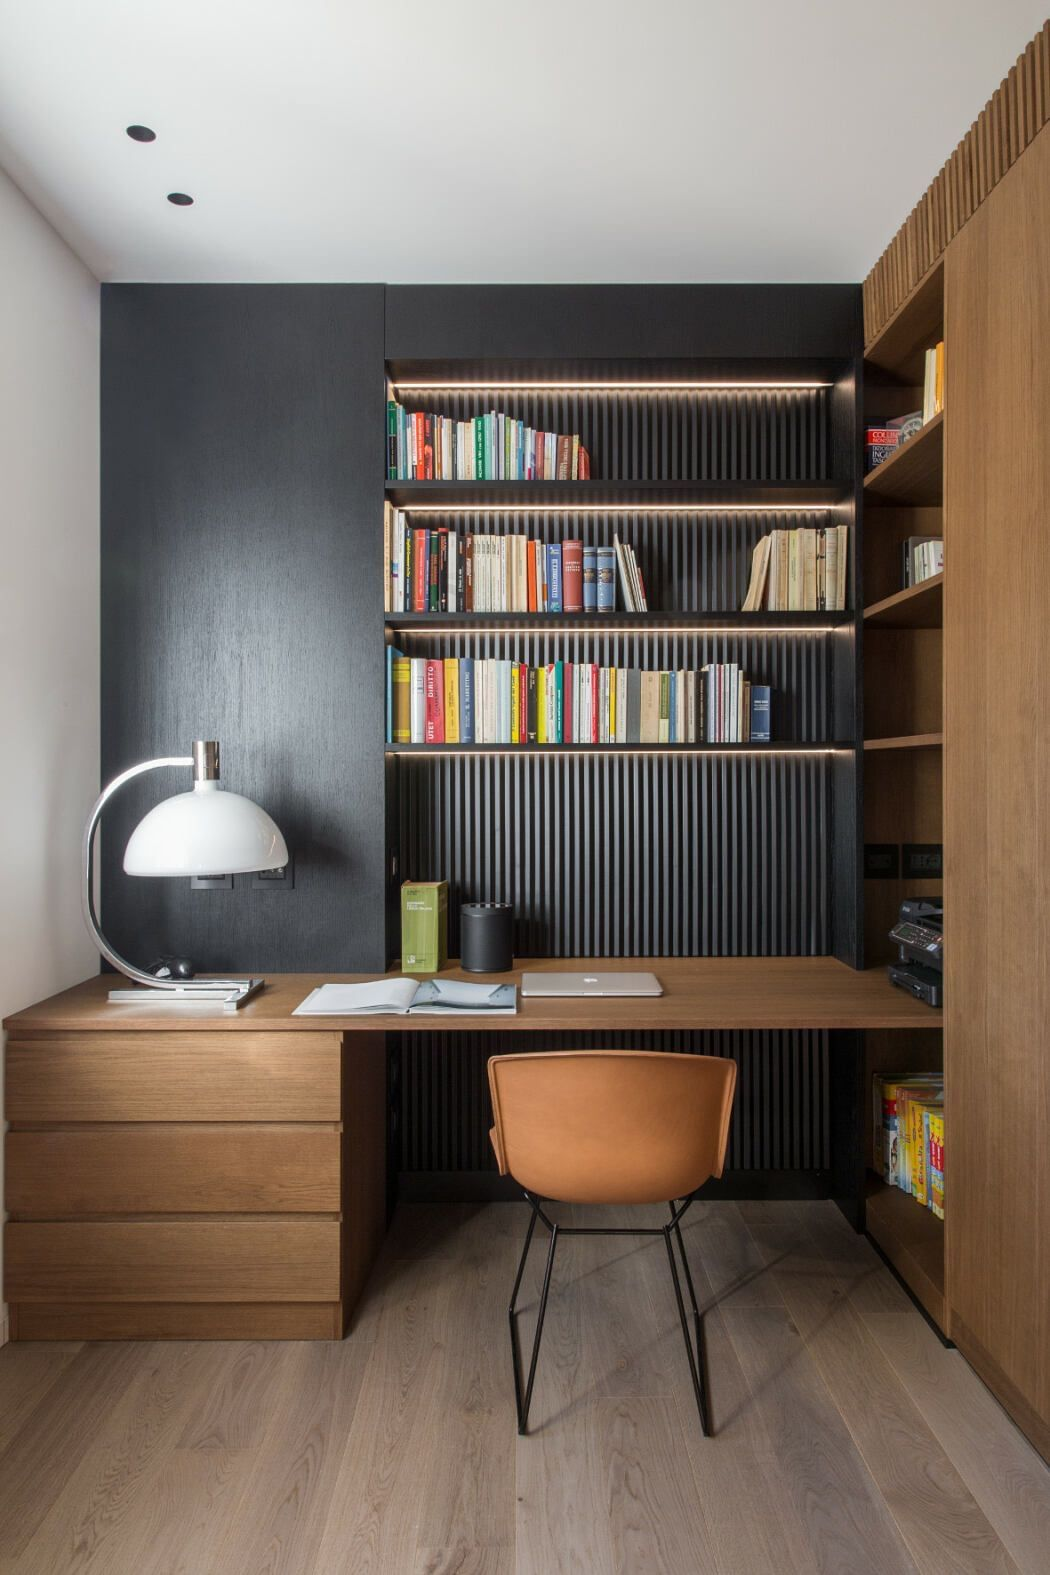 Home Office With Dark Walls Book Shelves And Furniture In Teak